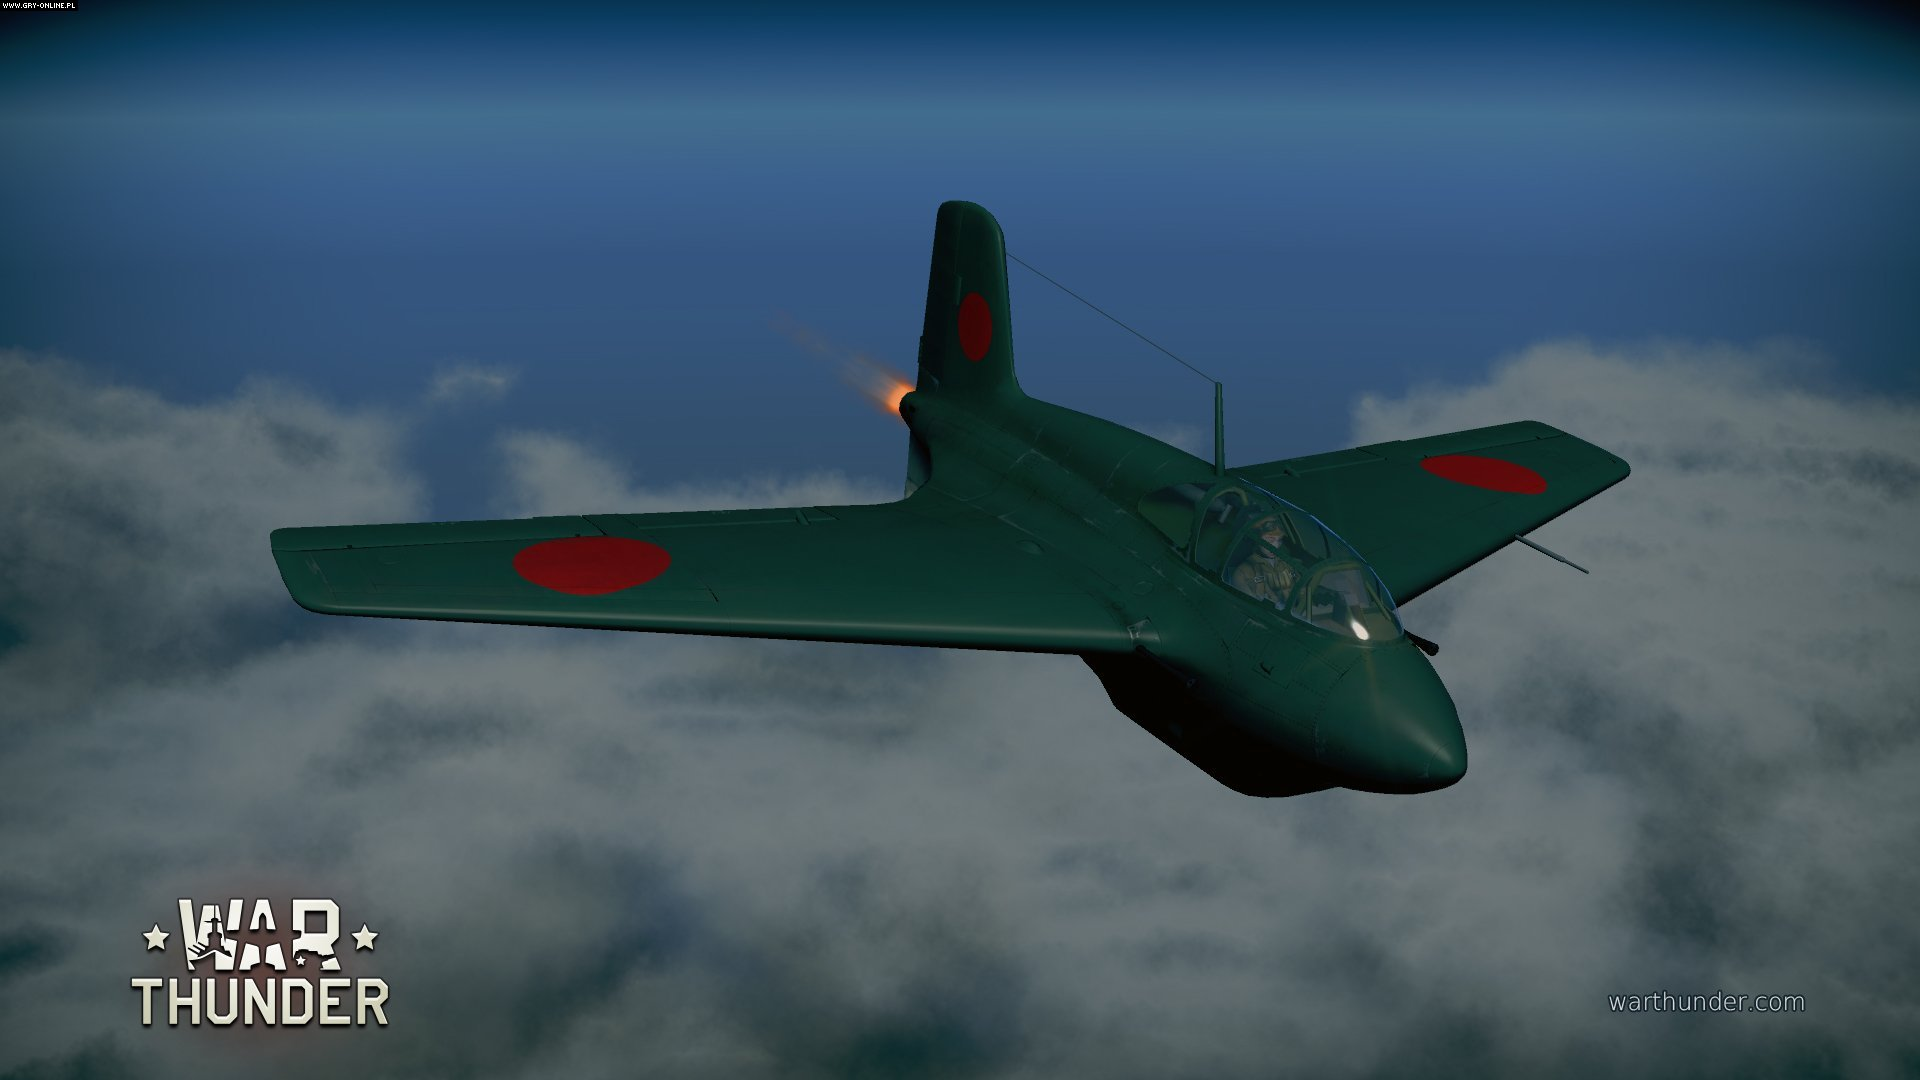 War Thunder PC, PS4, XONE Gry Screen 212/476, Gaijin Entertainment